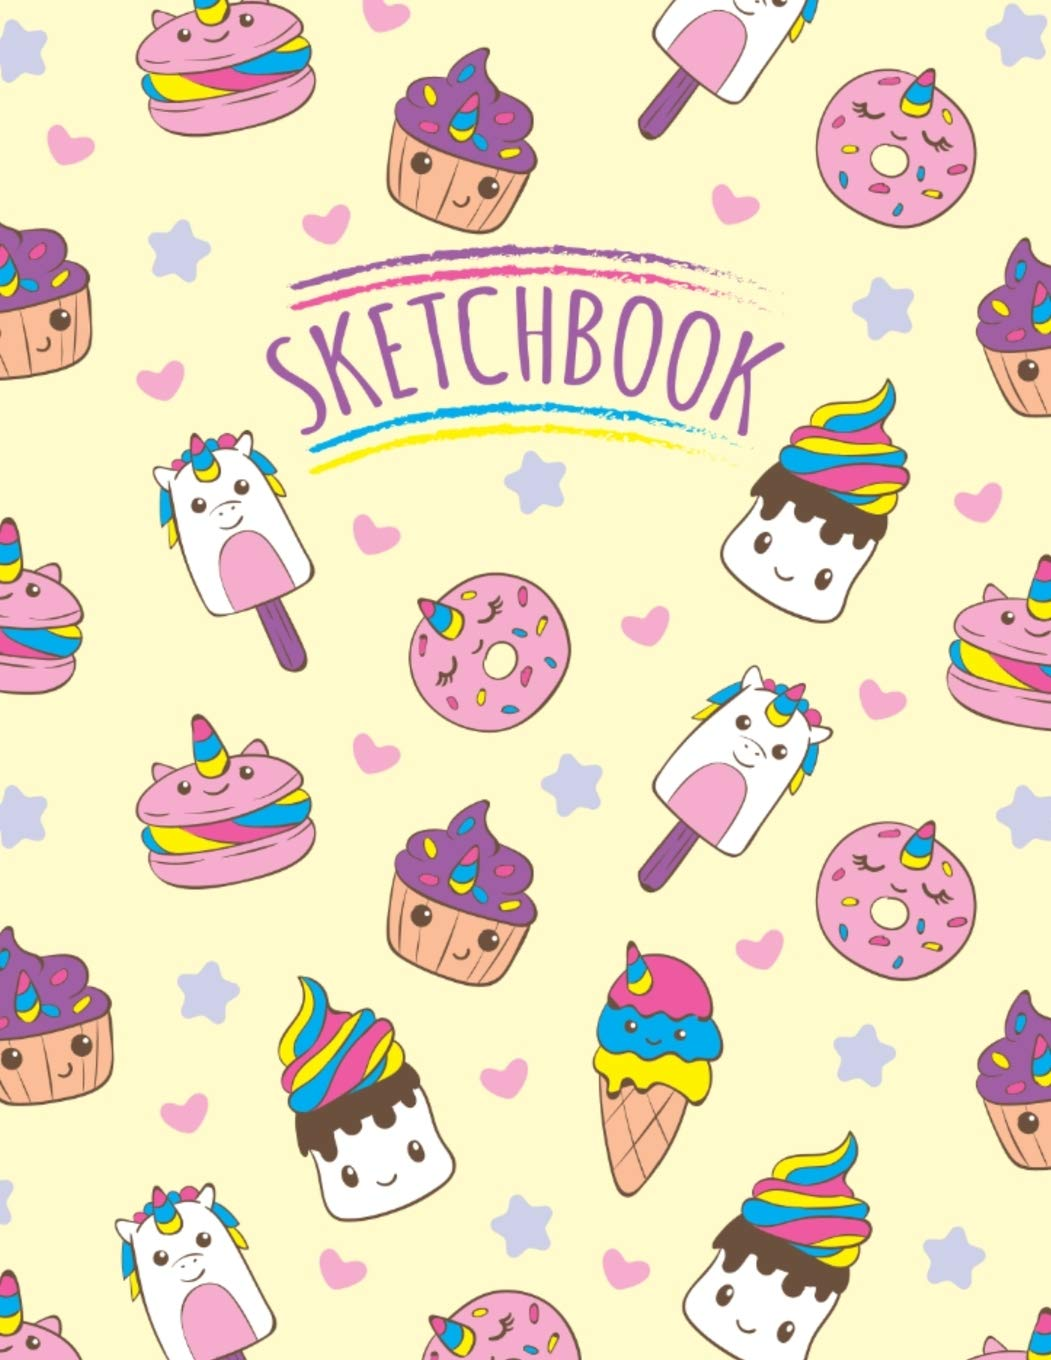 Sketchbook Magical Kawaii Unicorn Ice Cream And Cupcakes Sweets Sketchbook For Girls Unlined Blank Notebook For Sketching Journaling And Doodling Cute Drawing Book For Creative Kids Picturesque Press 9781696046664 Amazon Com Books